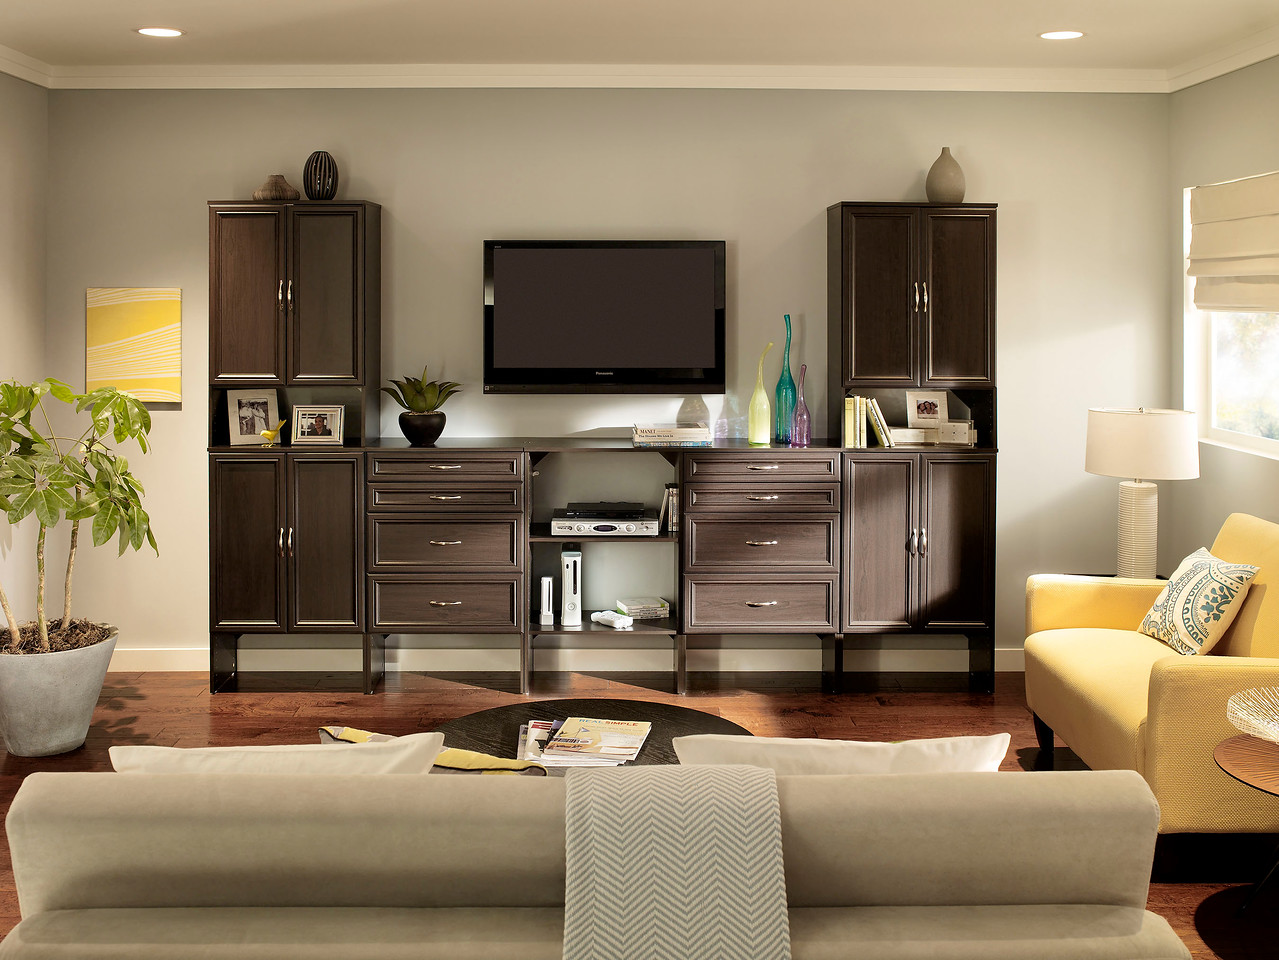 Nice Living Room With A Display/storage Area Created With ClosetMaid  SuiteSymphony In Espresso.